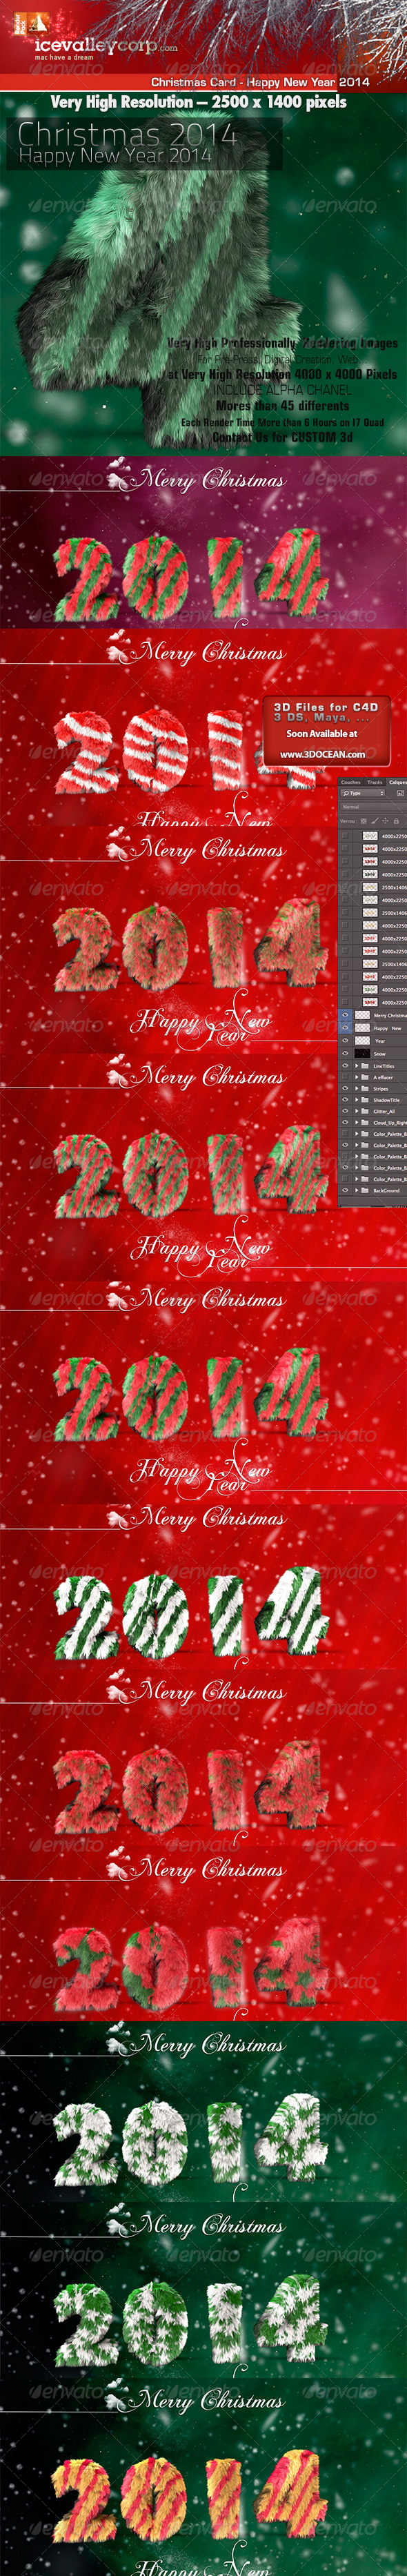 GraphicRiver Greetings Merry Christmas-Happy New Year 2014 6362977